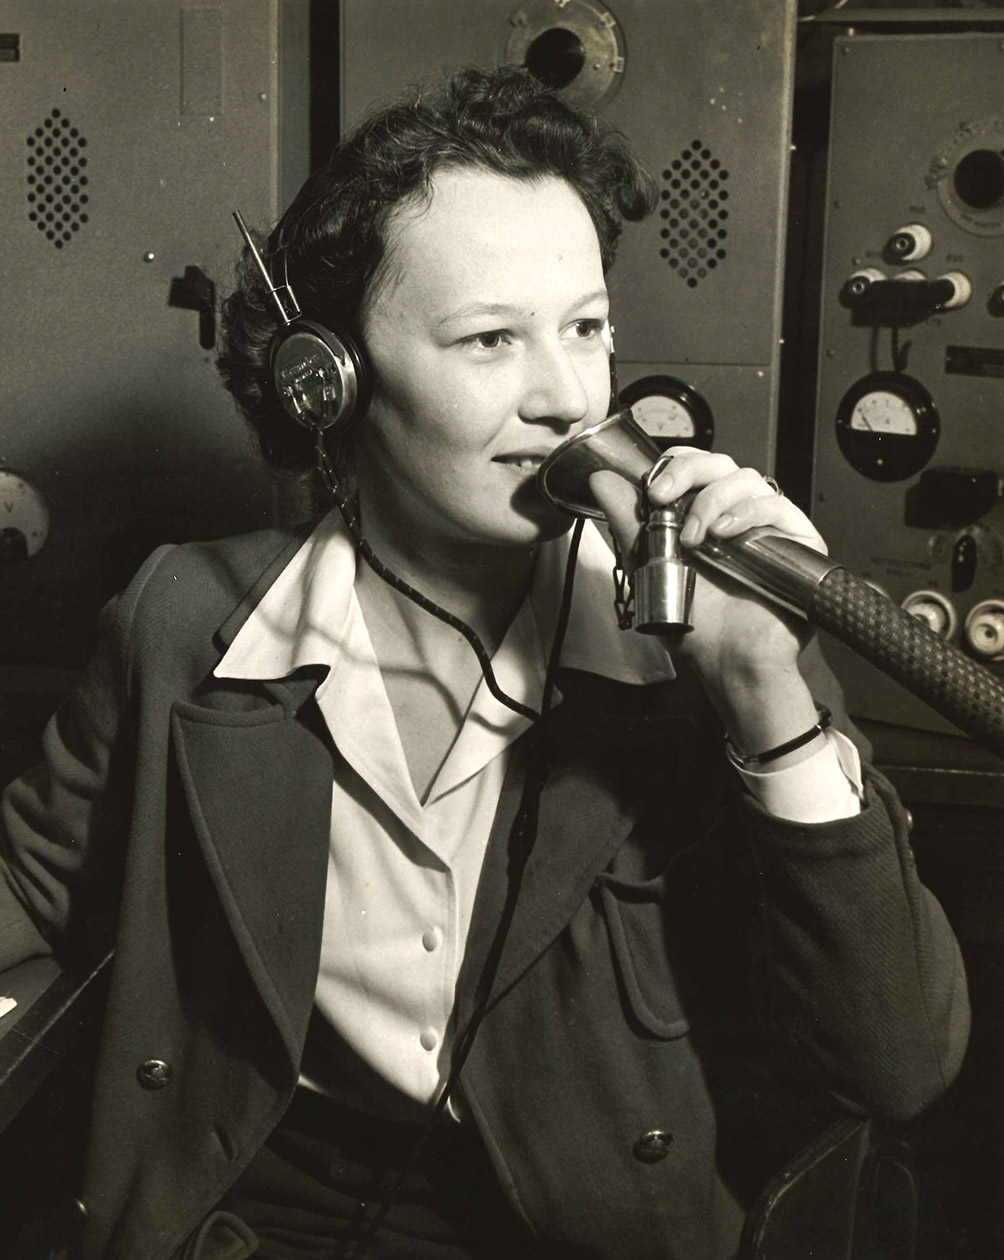 Fern Blodgett Sunde, from Cobourg, Ont., was the first woman ever to serve deep sea as a wireless radio operator.